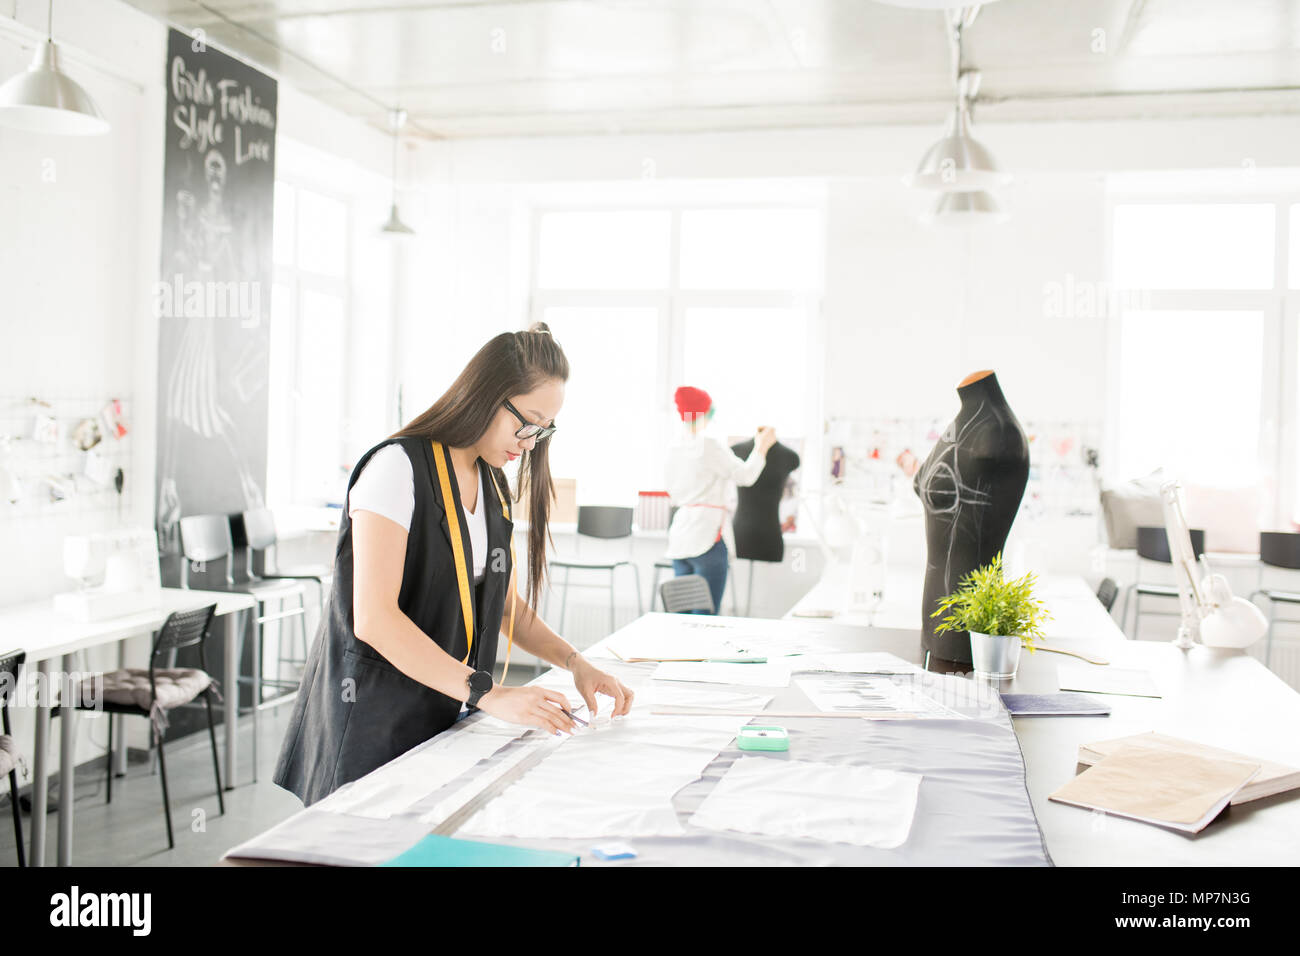 Creative Designers Working in Atelier - Stock Image